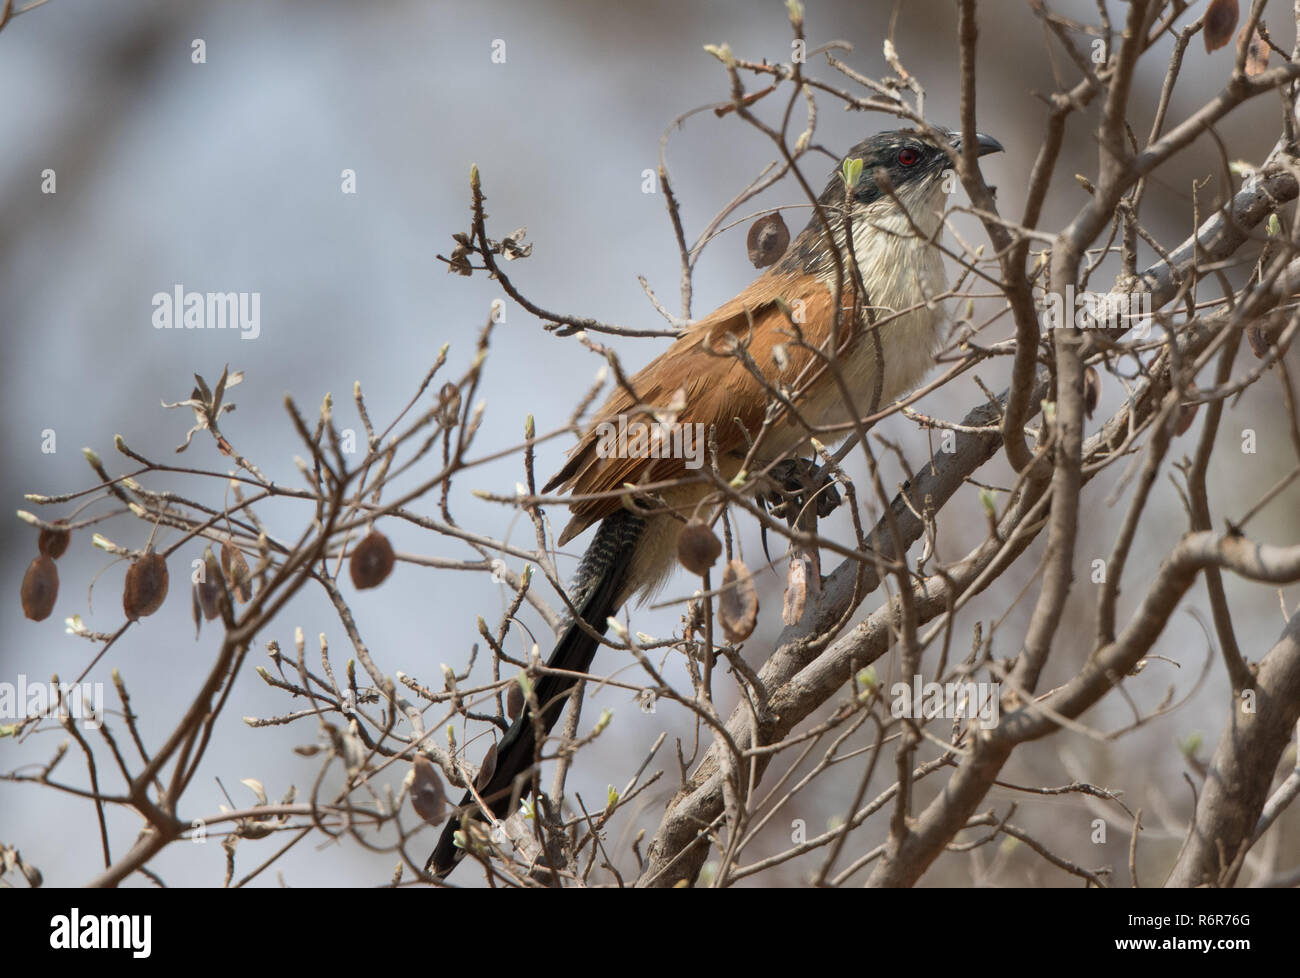 Burchell's Coucal (Centropus burchellii) - Stock Image